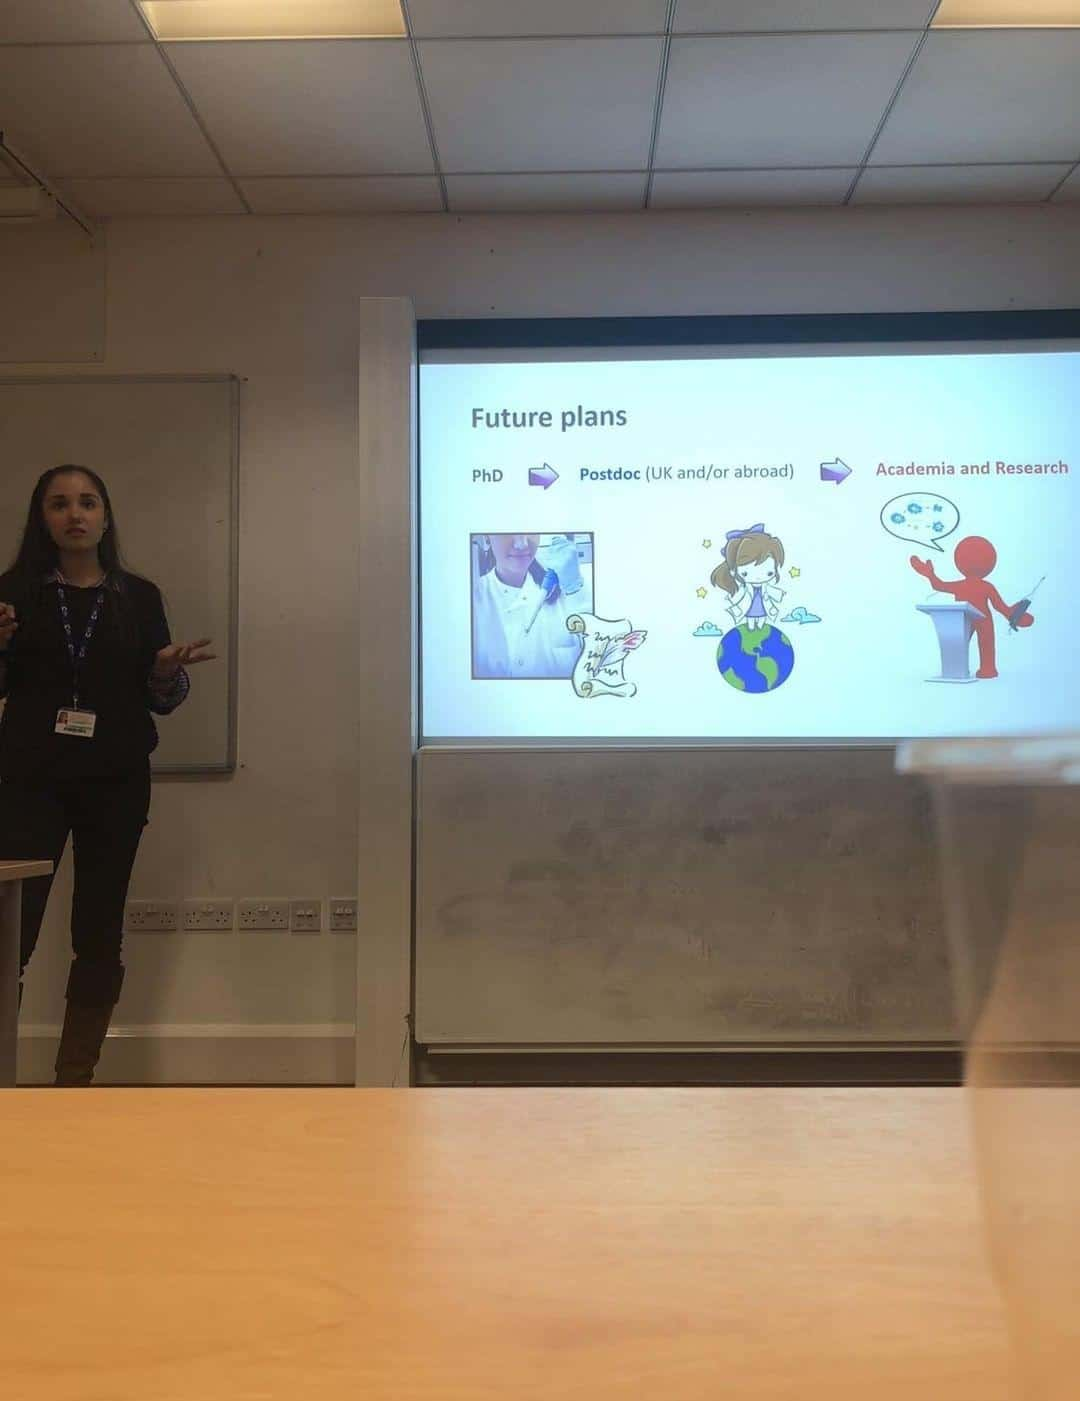 giving a careers talk to students - Maria Sharif